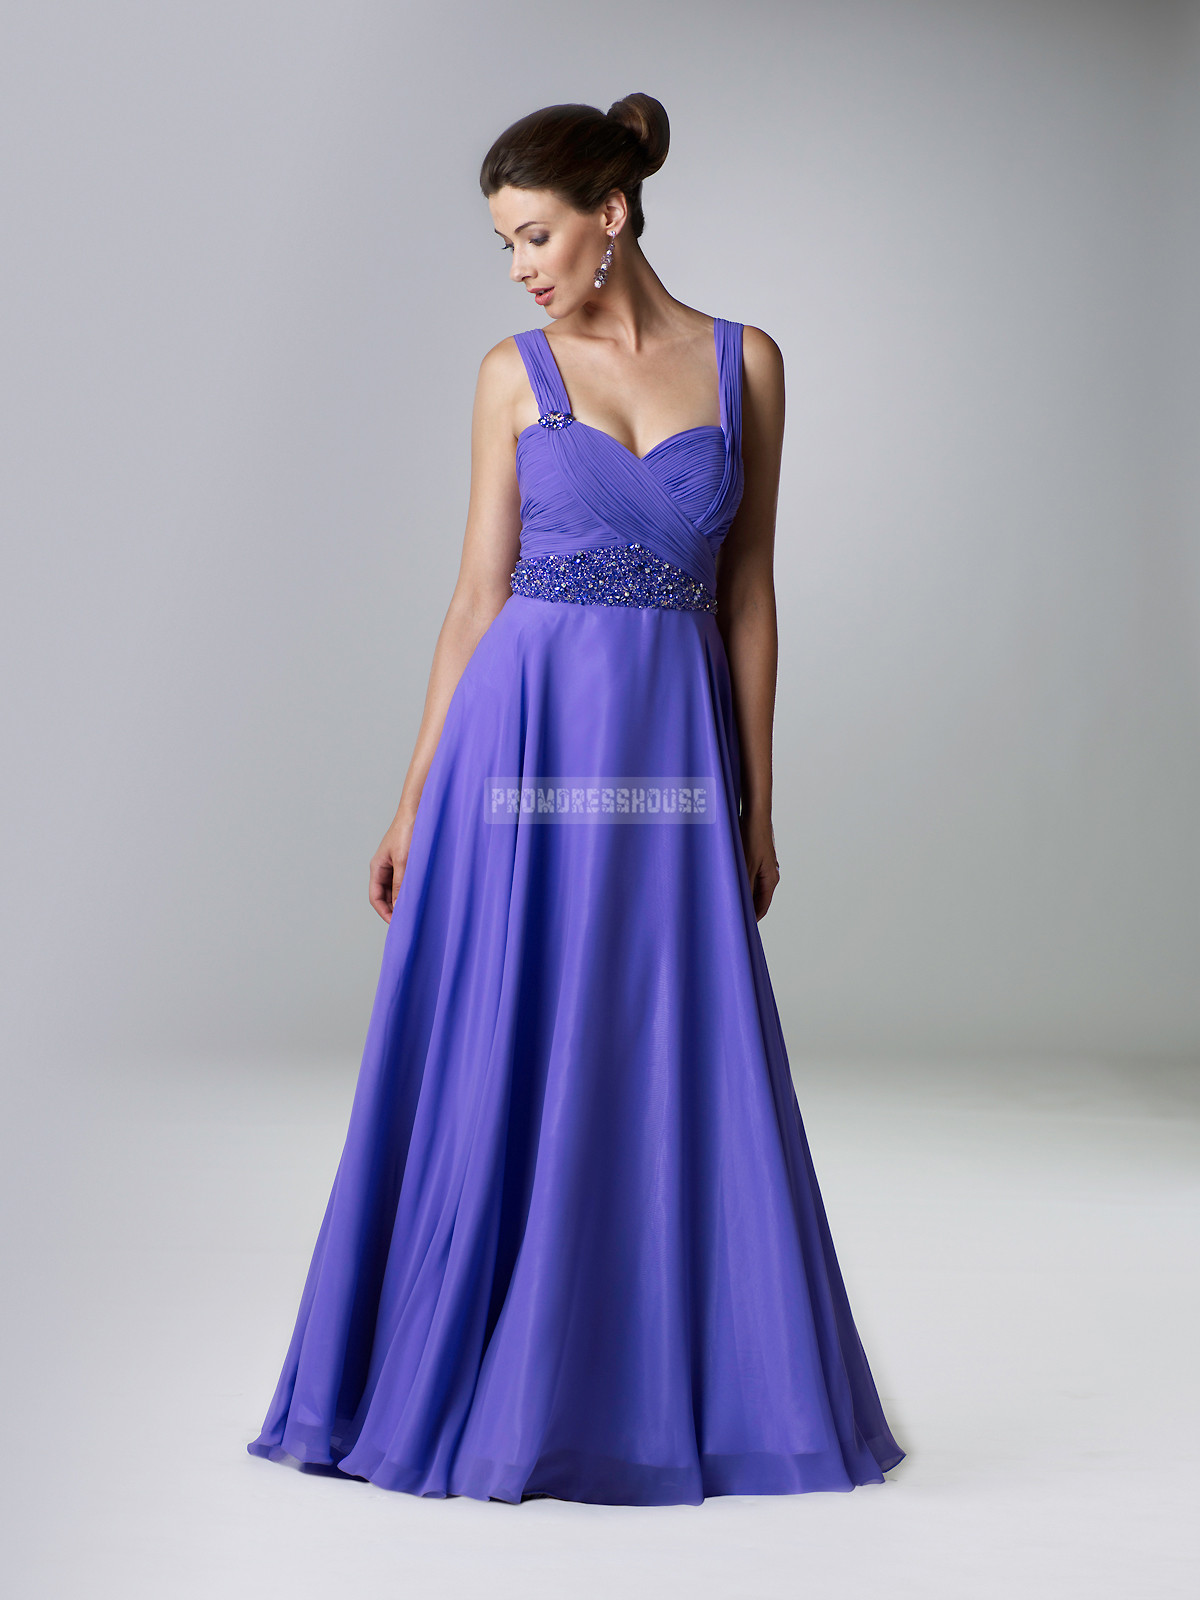 Chiffon A-line Panel Train Purple Straps Dramatic Evening Dress - Promdresshouse.com